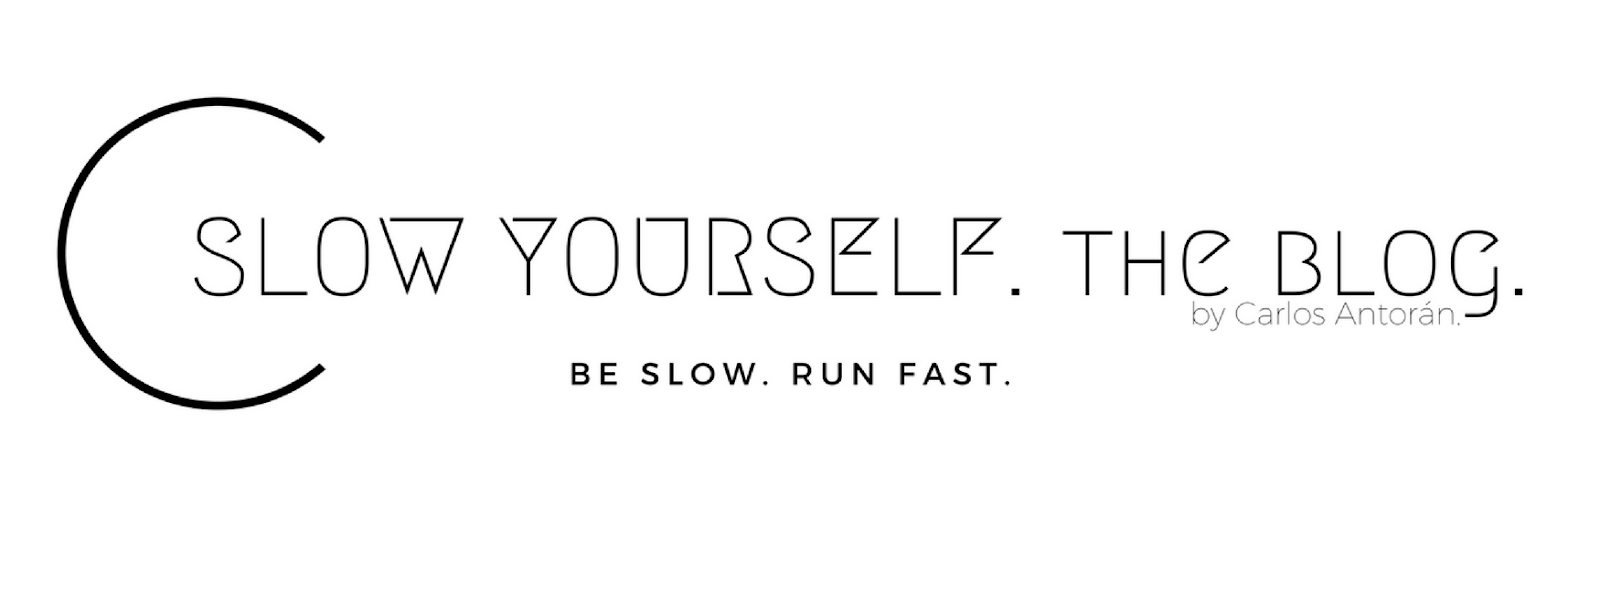 Be Slow - Run Fast by Carlos Antorán